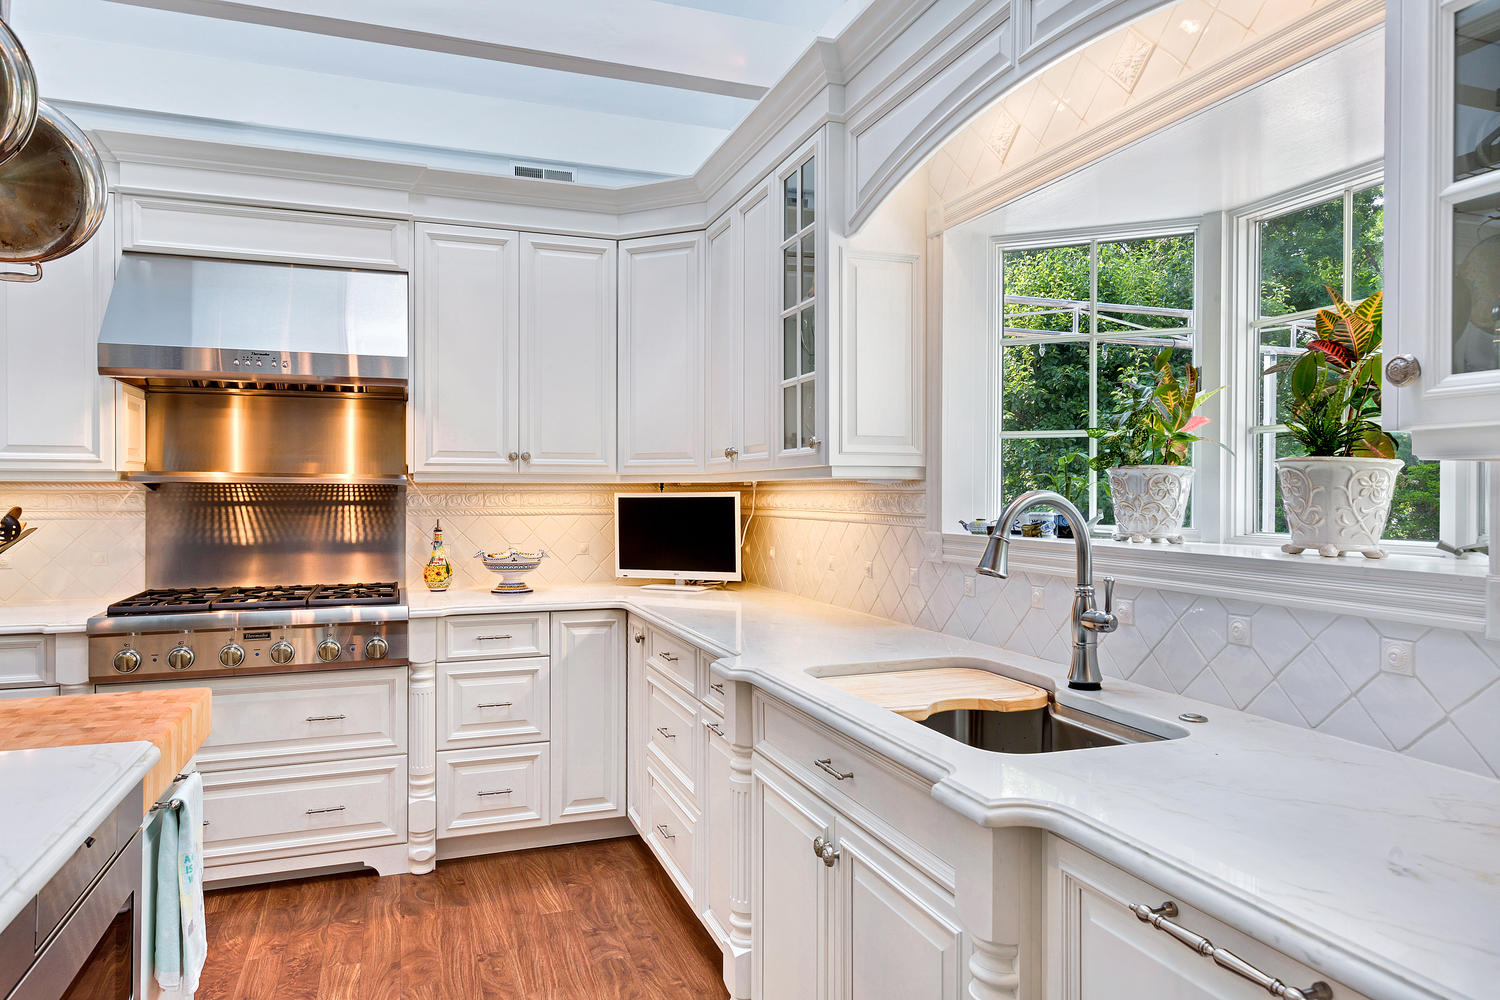 Luxury White Kitchens luxury white kitchen avon njdesign line kitchens